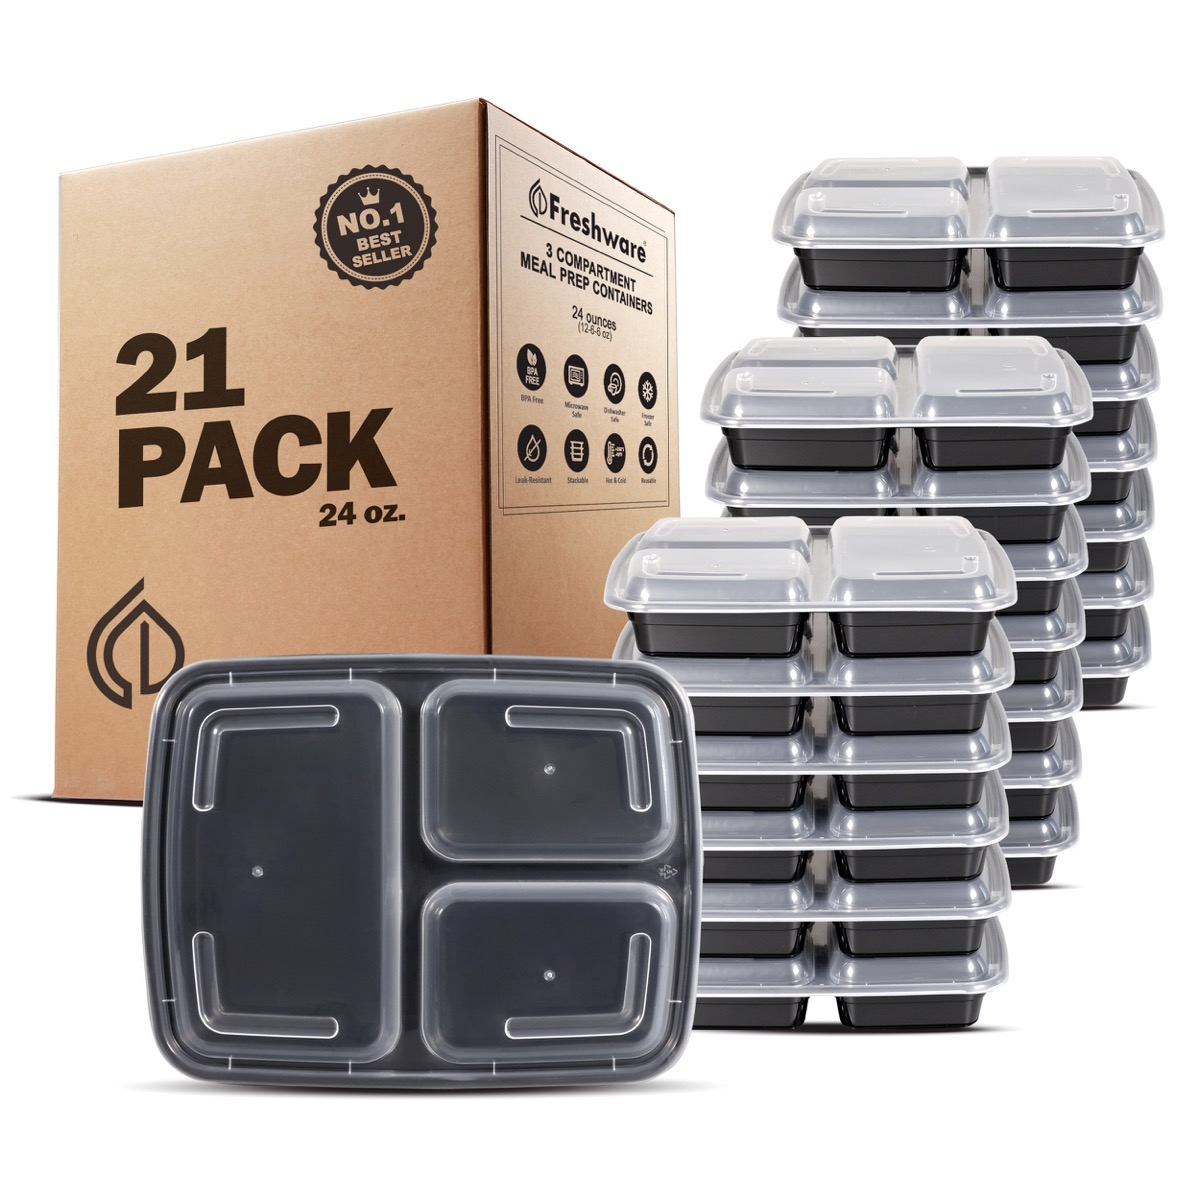 black meal prep containers with clear tops and brown cardboard box, cheap meal prep containers